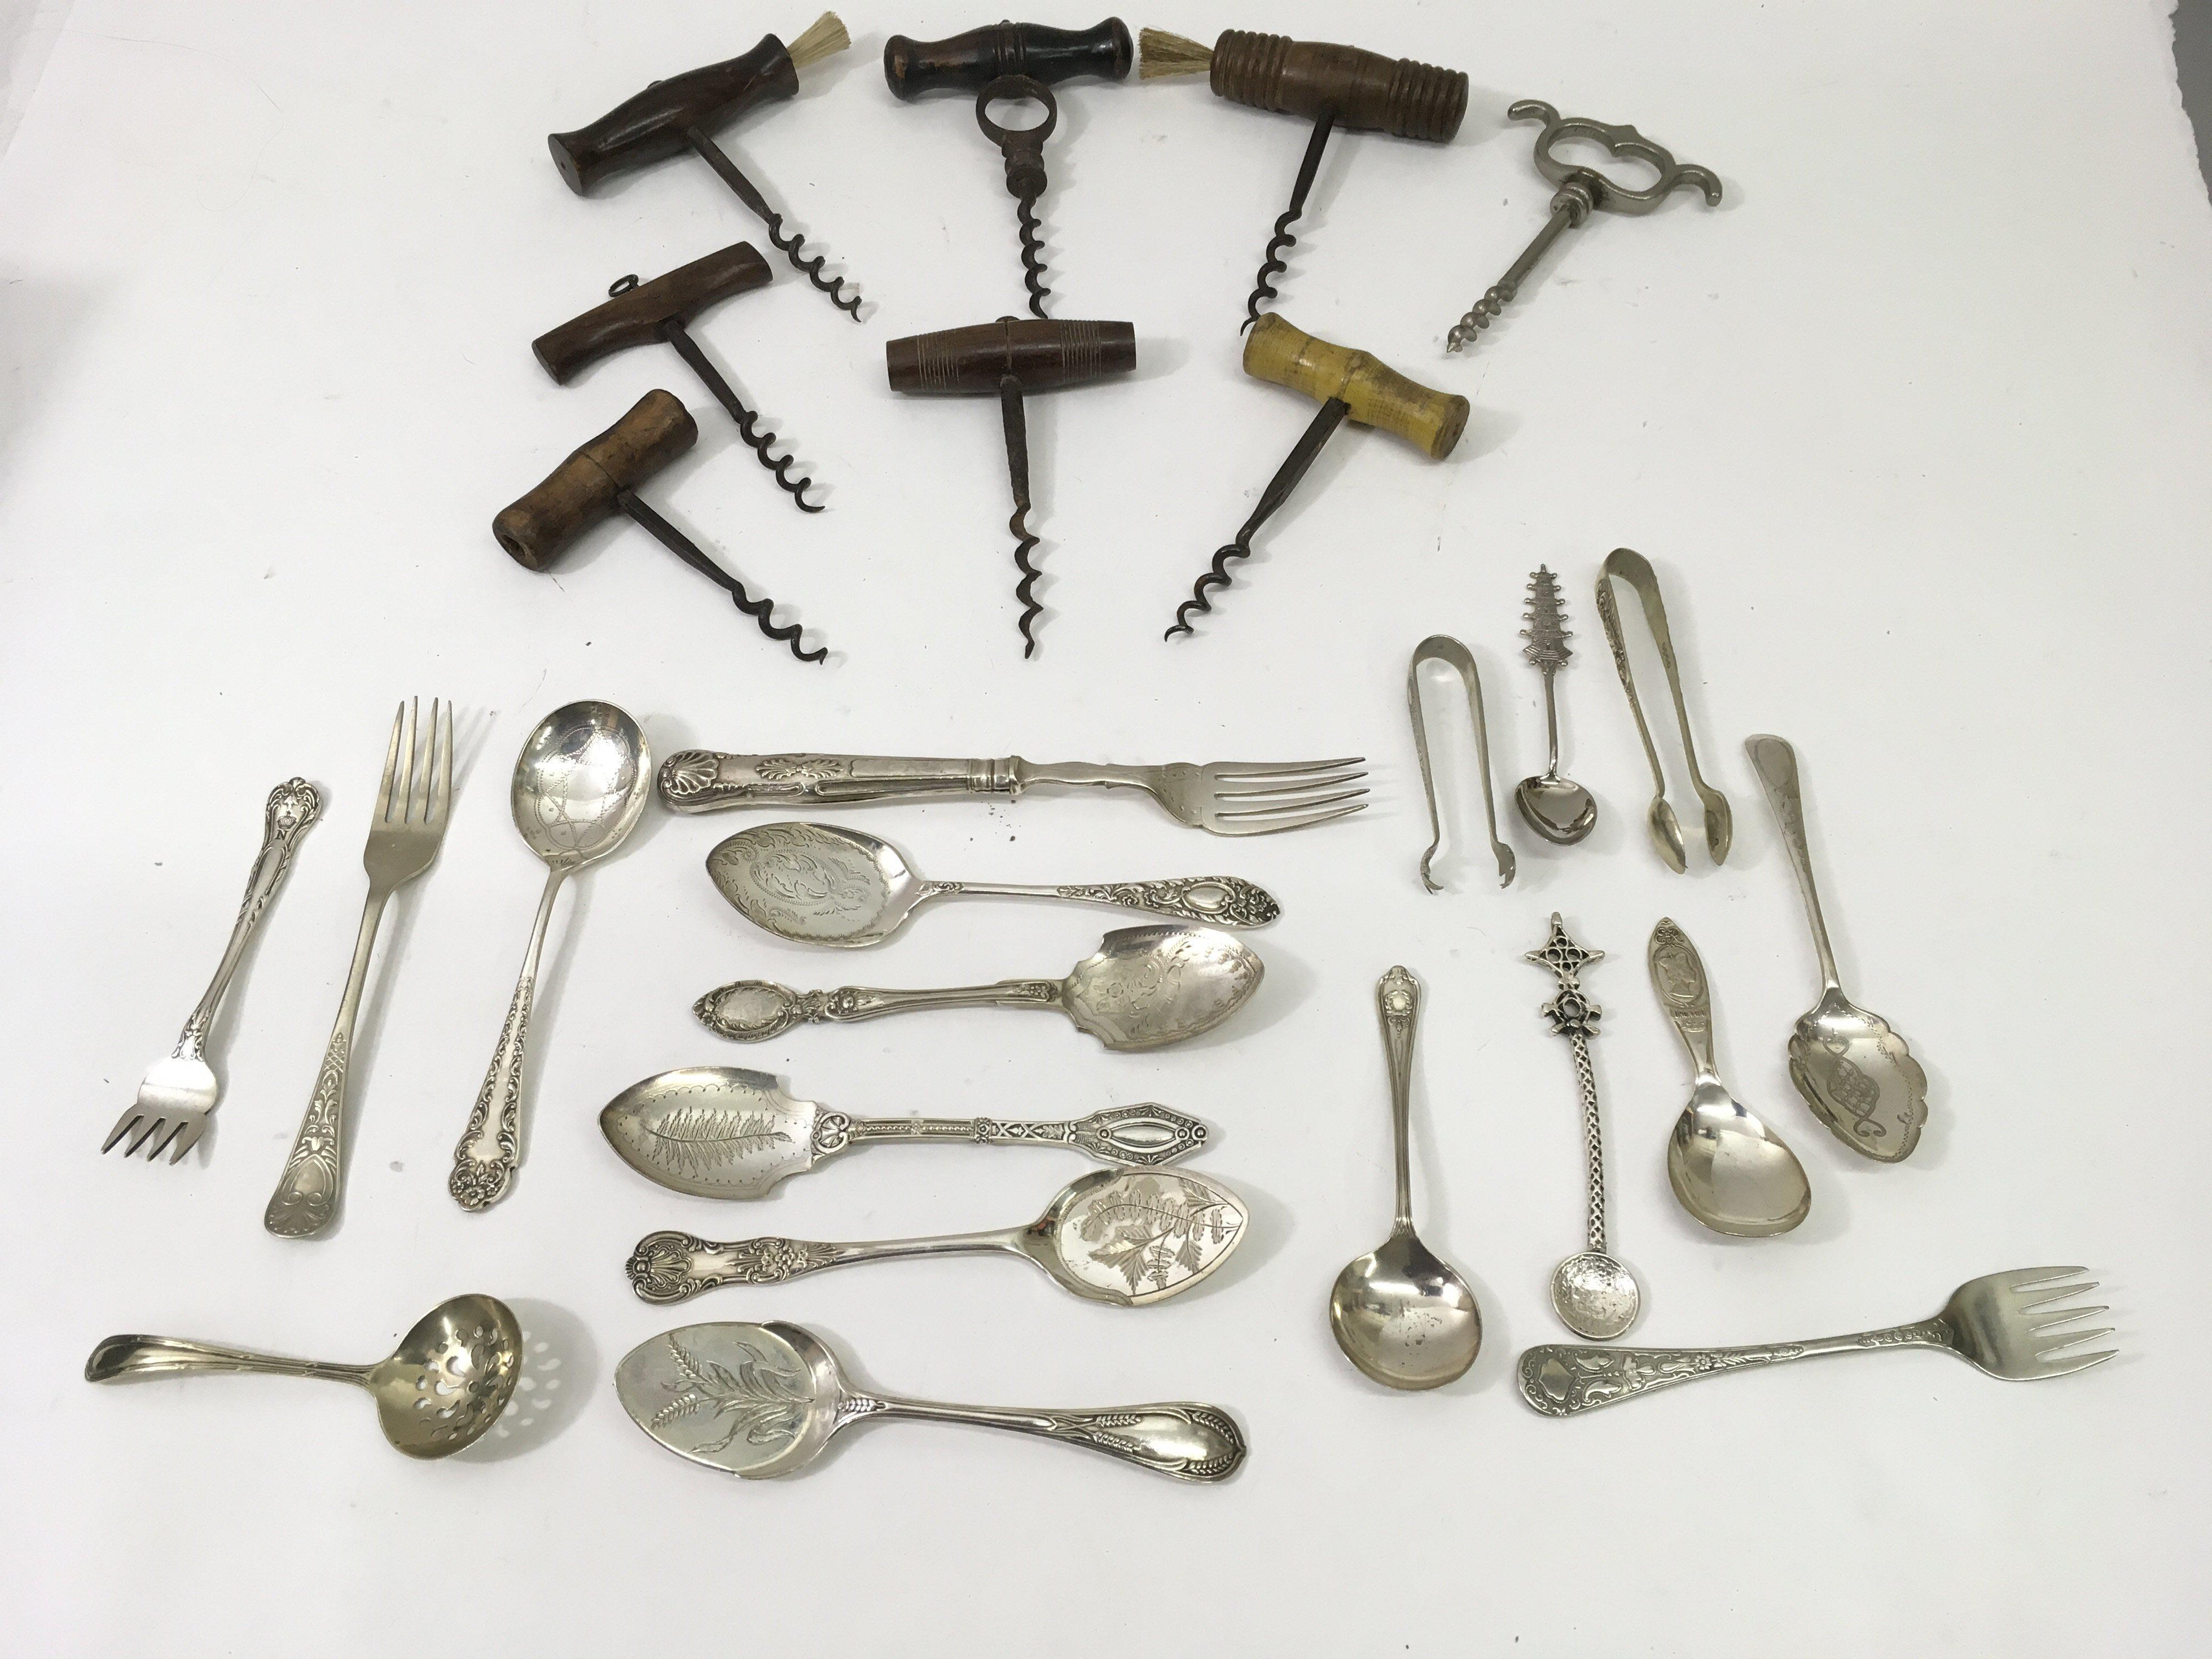 Lot 1817 - A collection of corkscrews and silver plated cutle